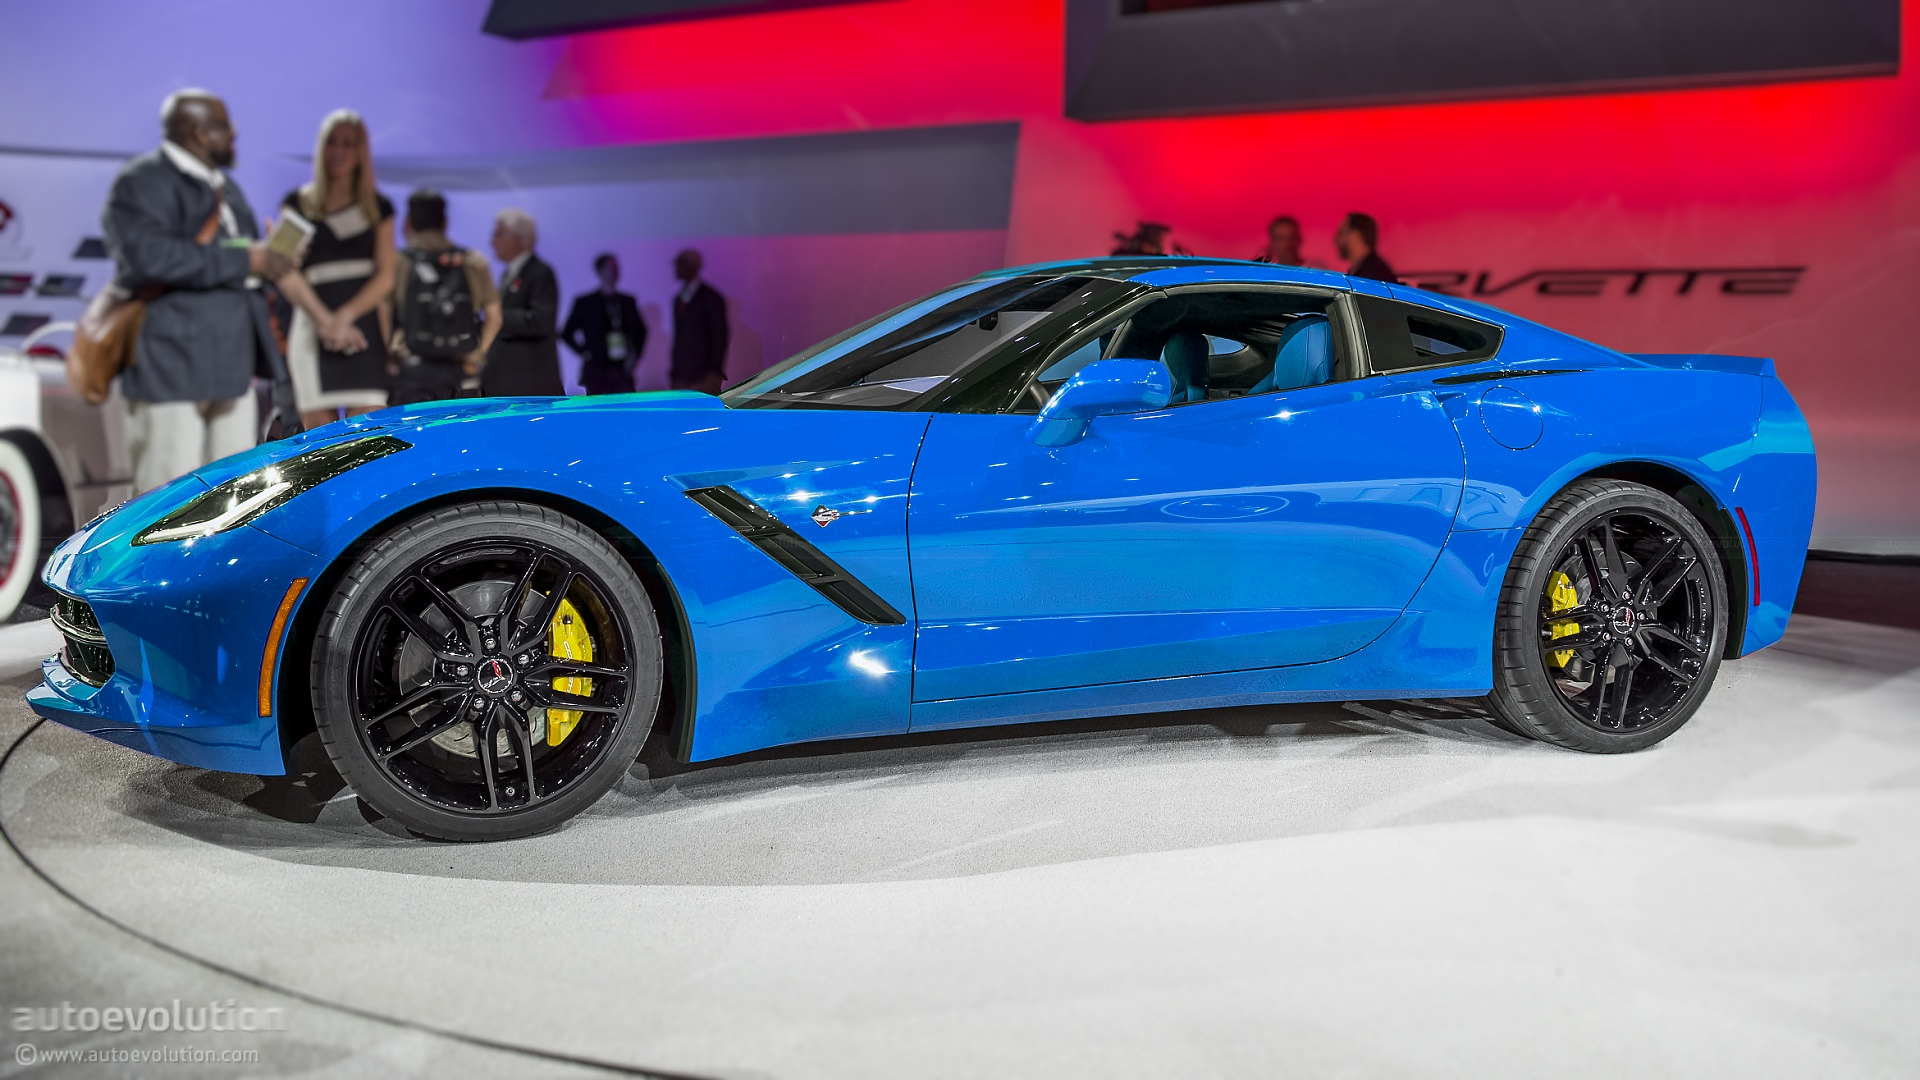 Edited Live Photo - Blue Corvette C7 Stingray #1/2